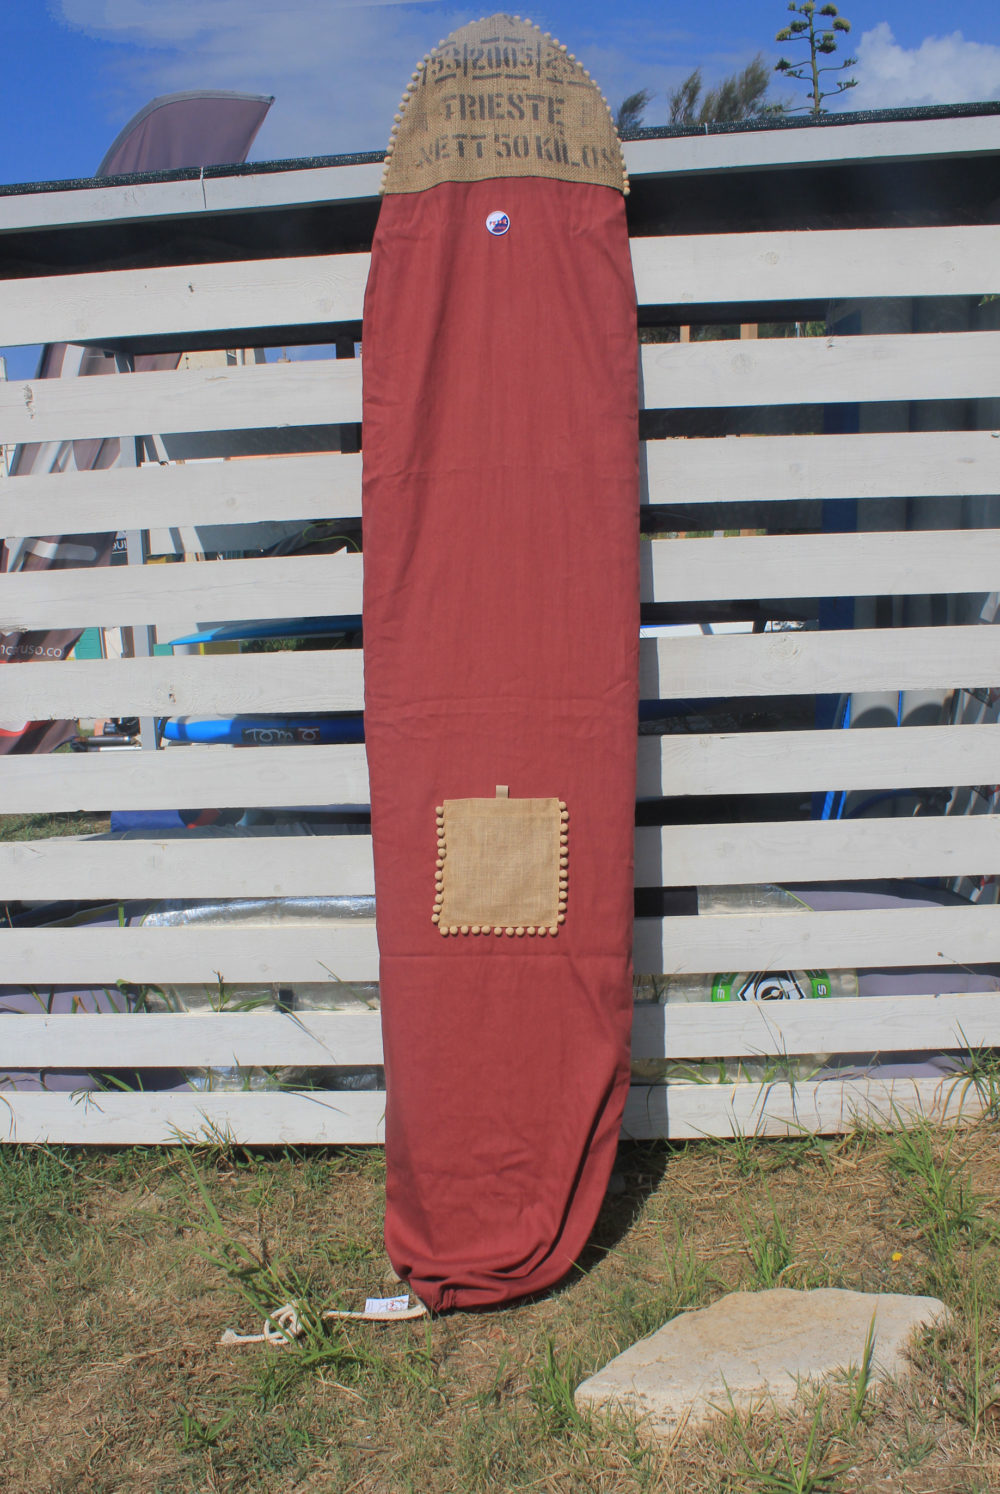 Handmade Custom Surfboard Bag - Surf bag - Boardbag - Fede Surfbags